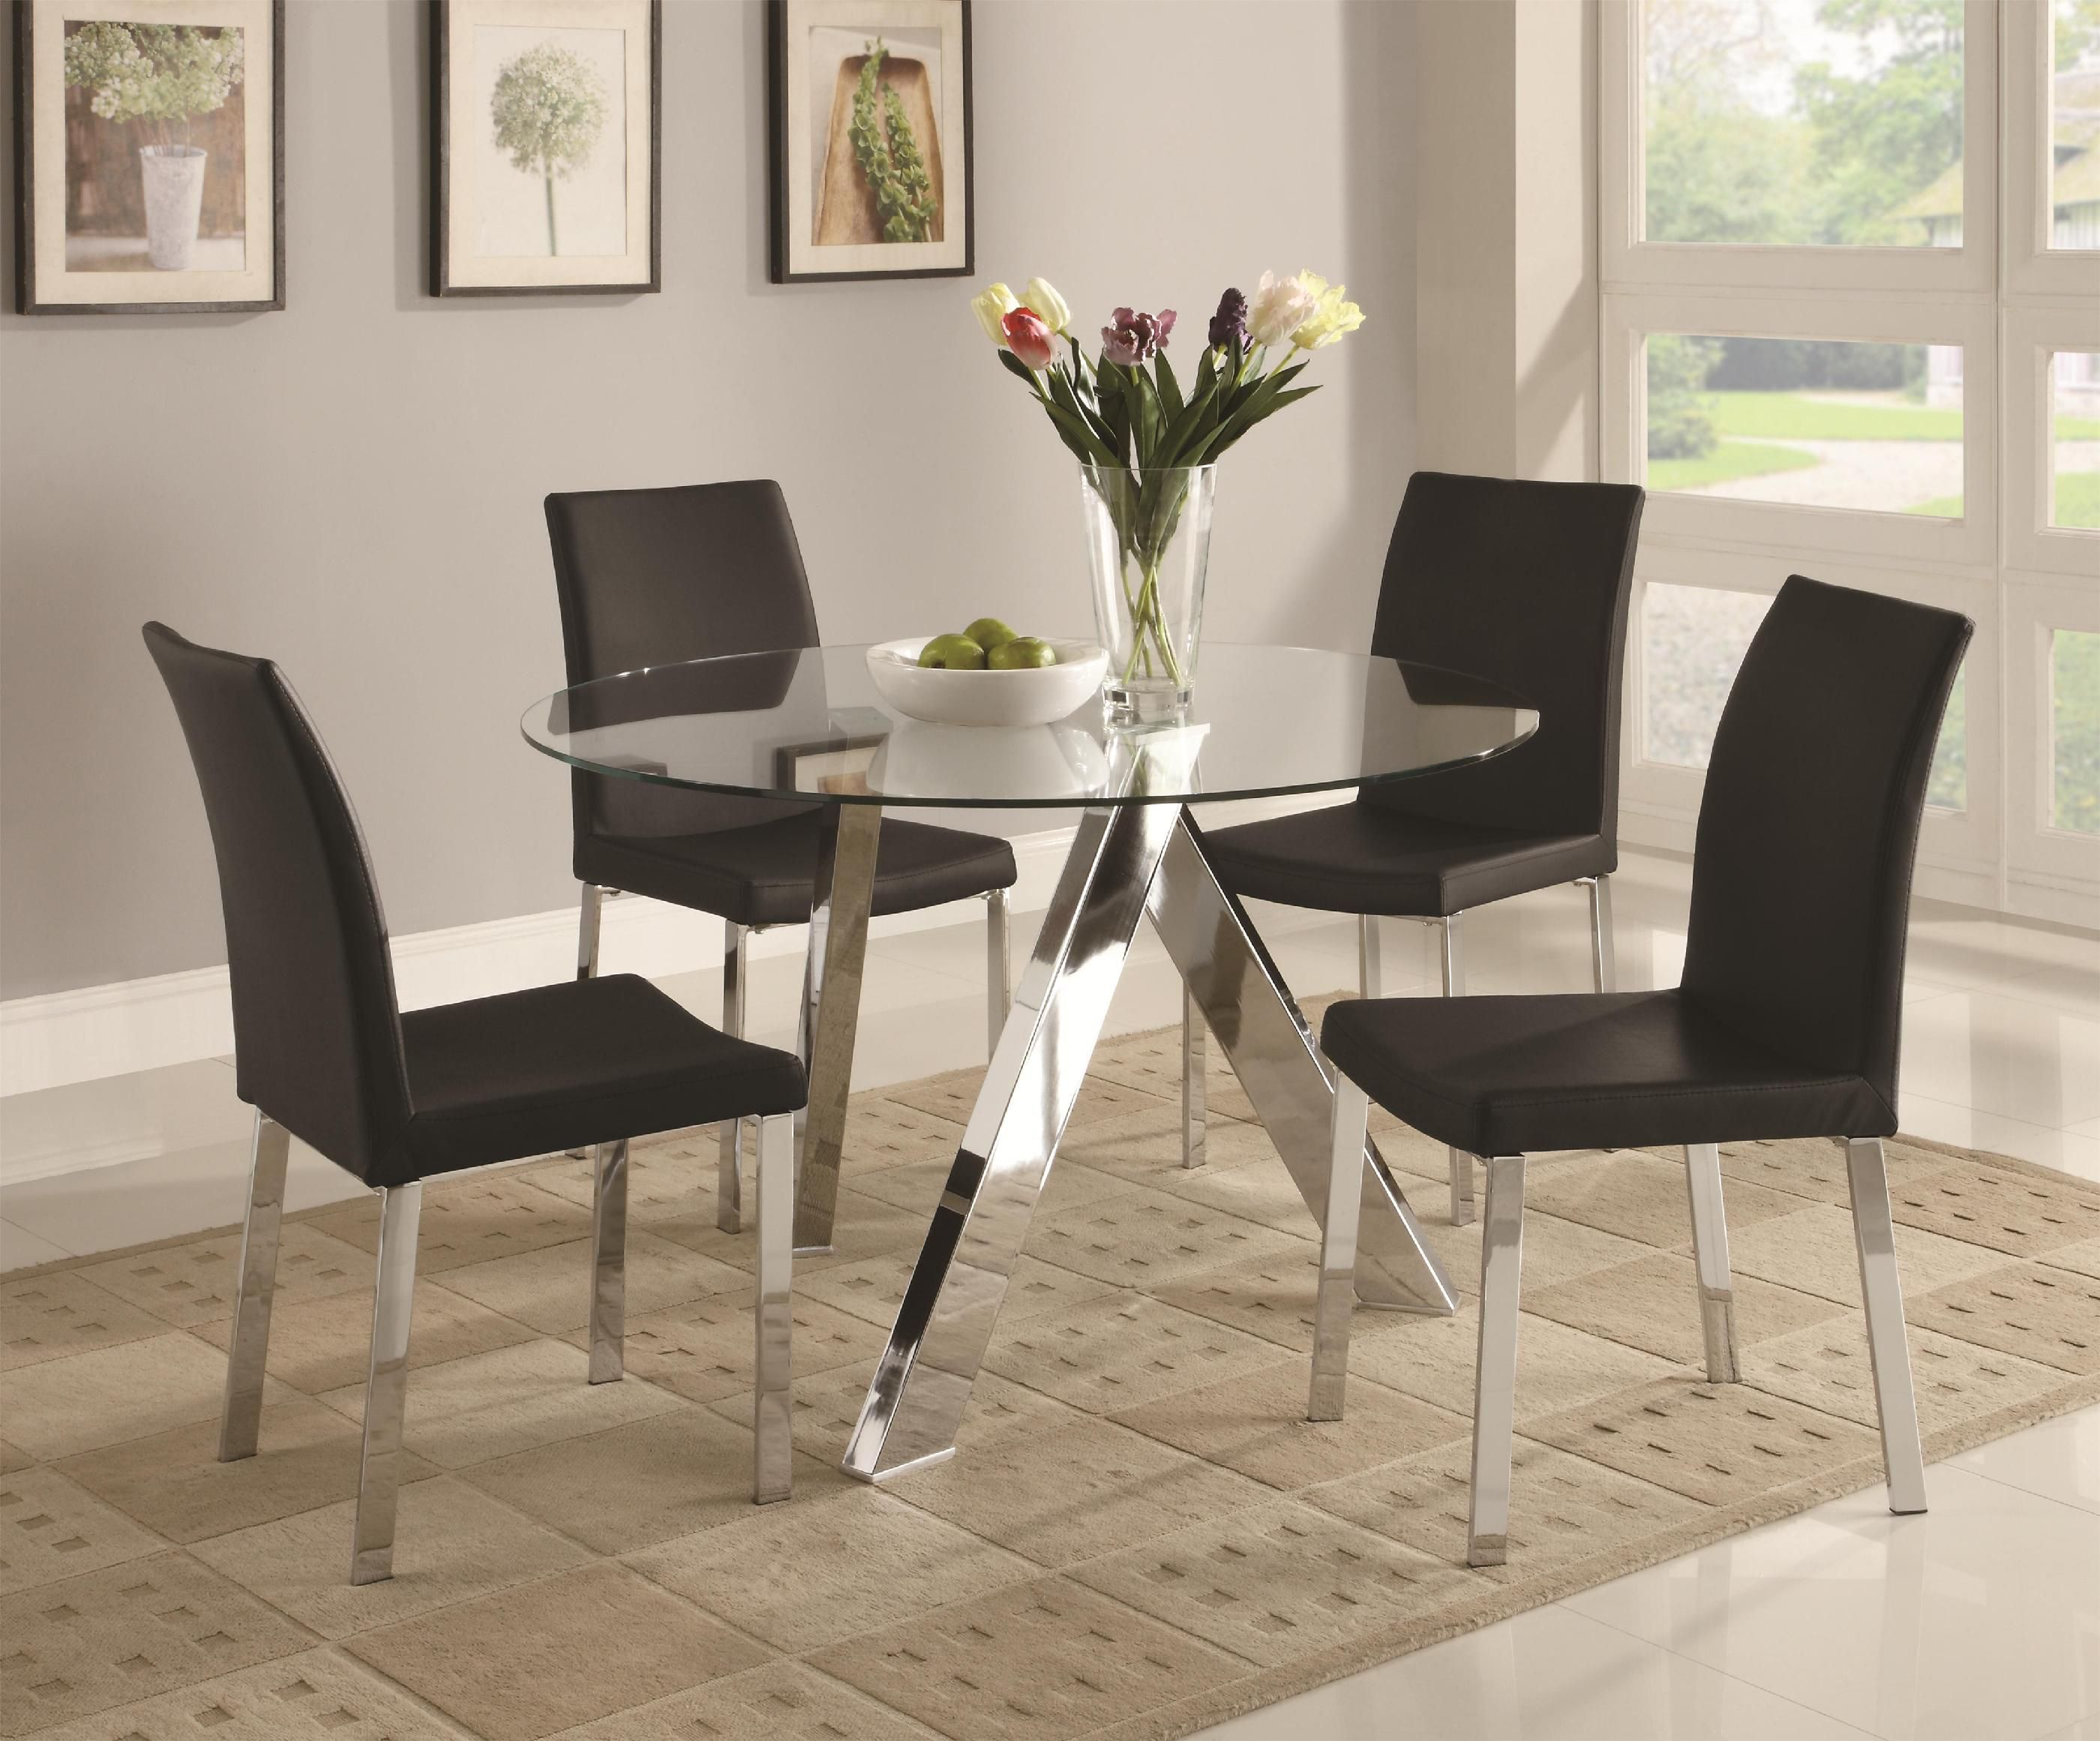 Dining Room Superb Dining Room Furniture Sets With Round Glass Alluring Glass Dining Room Set Decorating Design